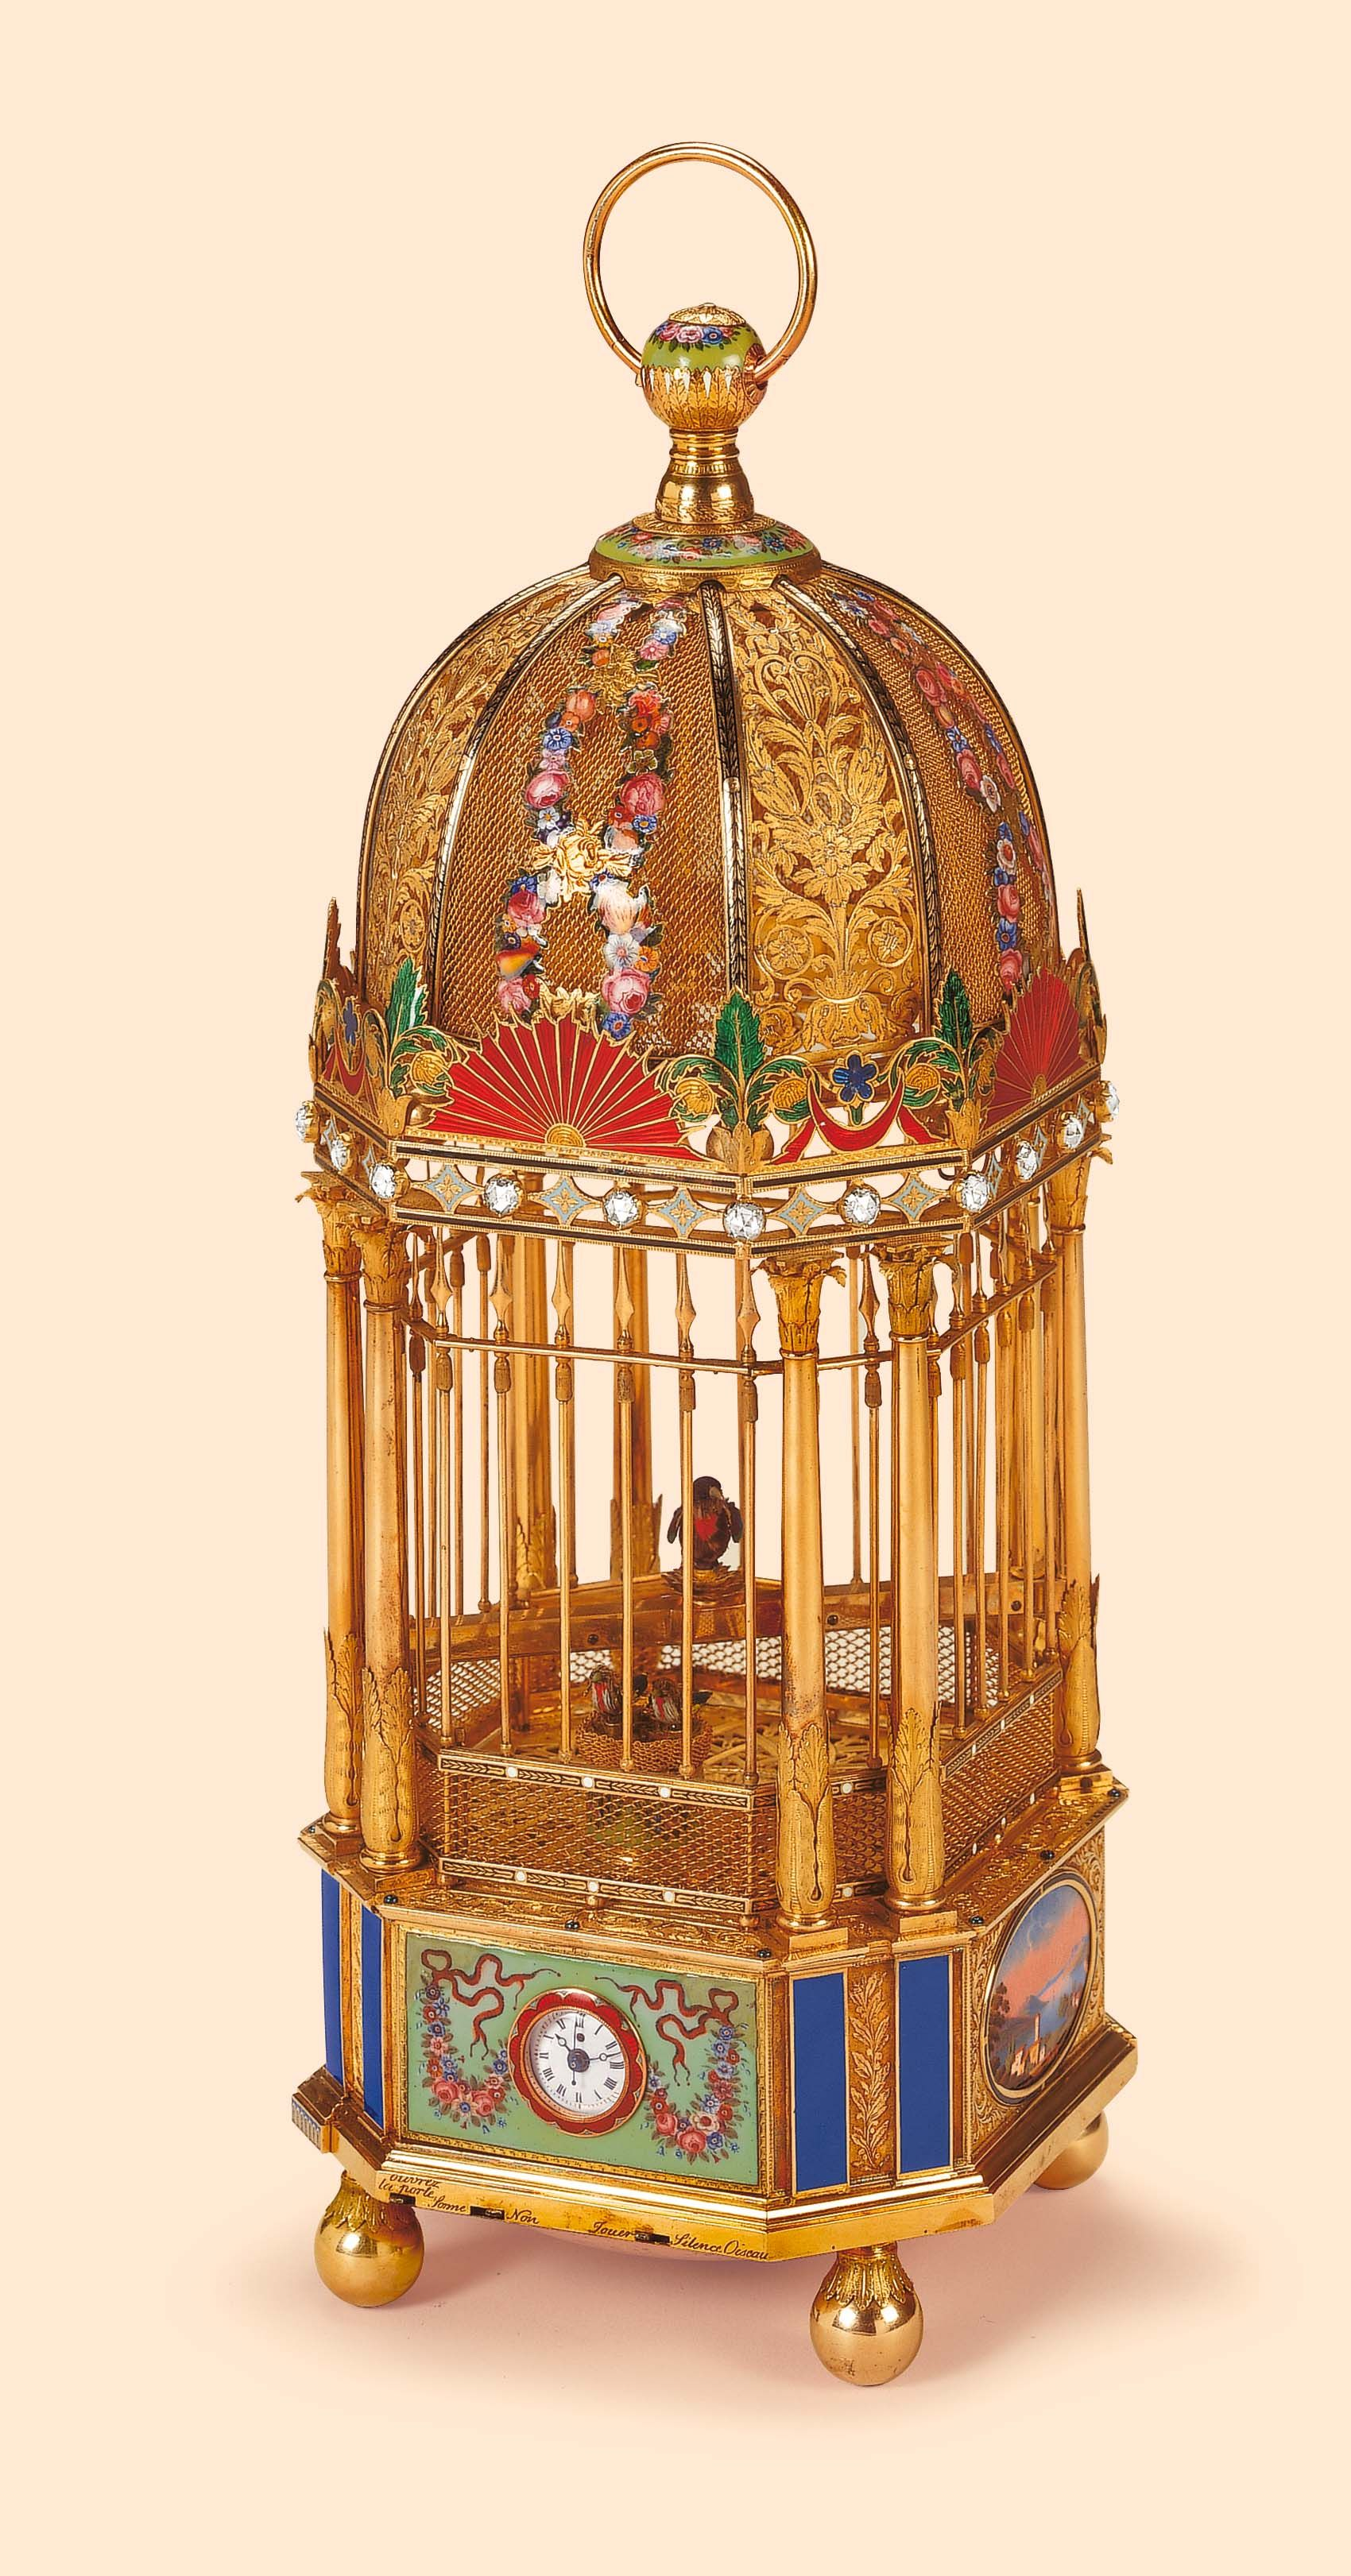 Image result for nightingale in a cage